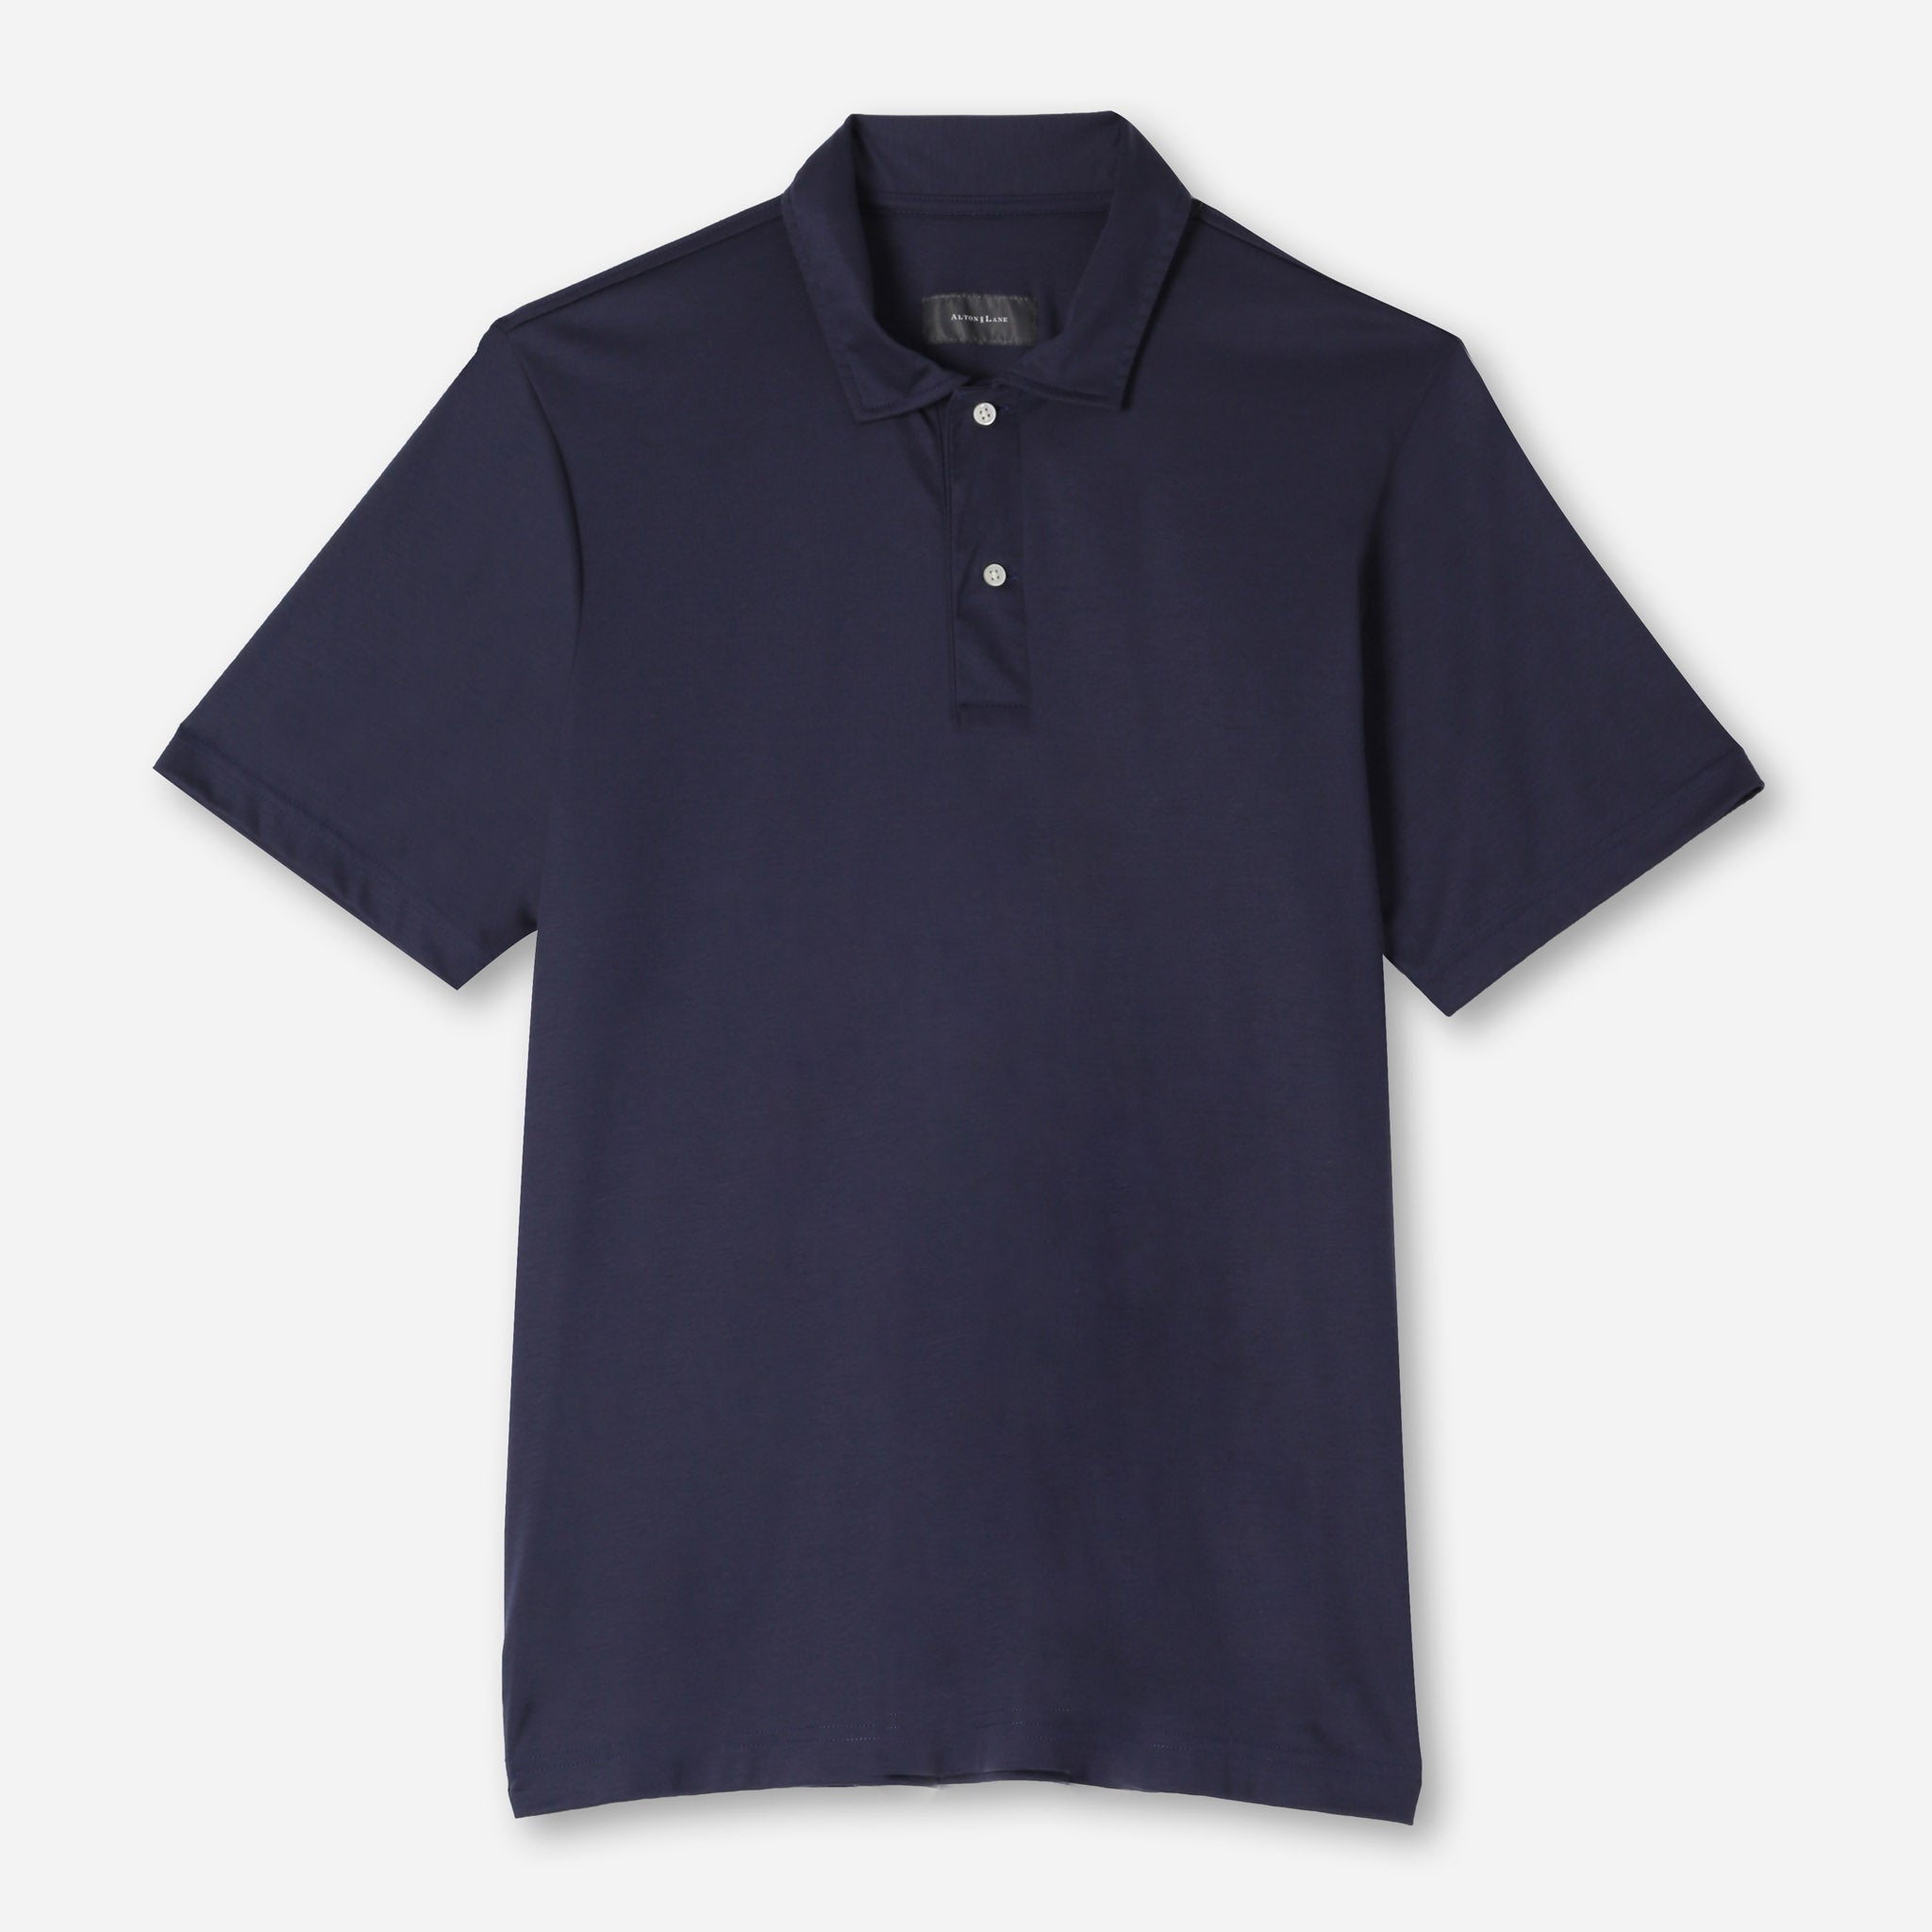 Scott Lifestyle in Navy